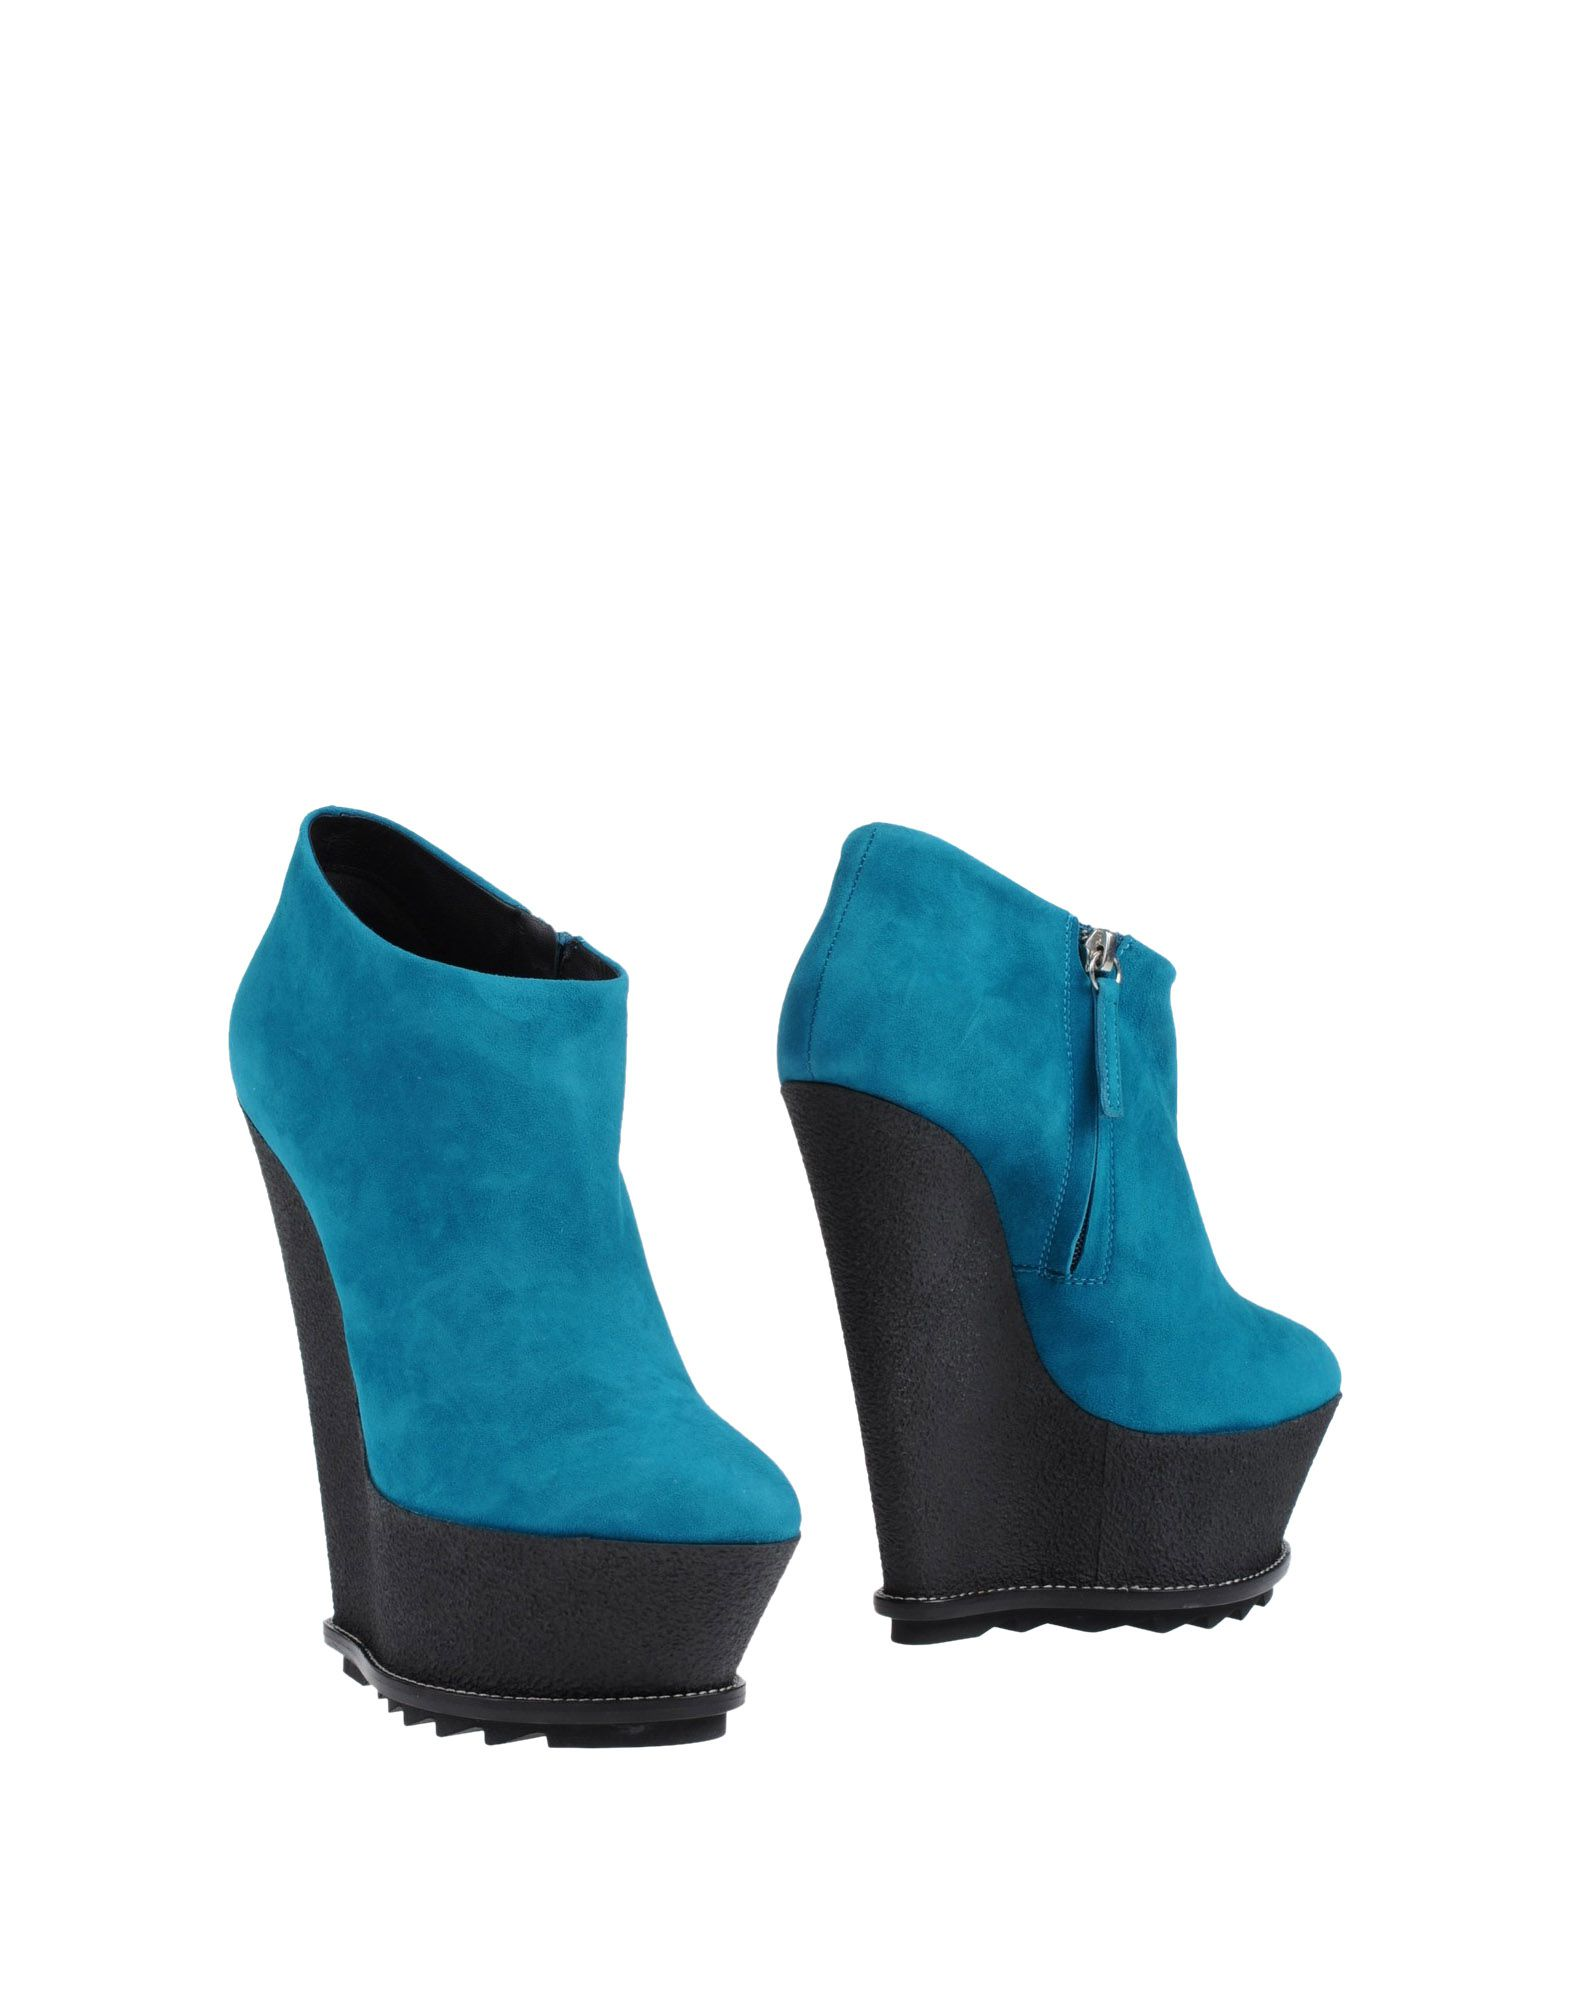 giuseppe zanotti ankle boots in blue turquoise lyst